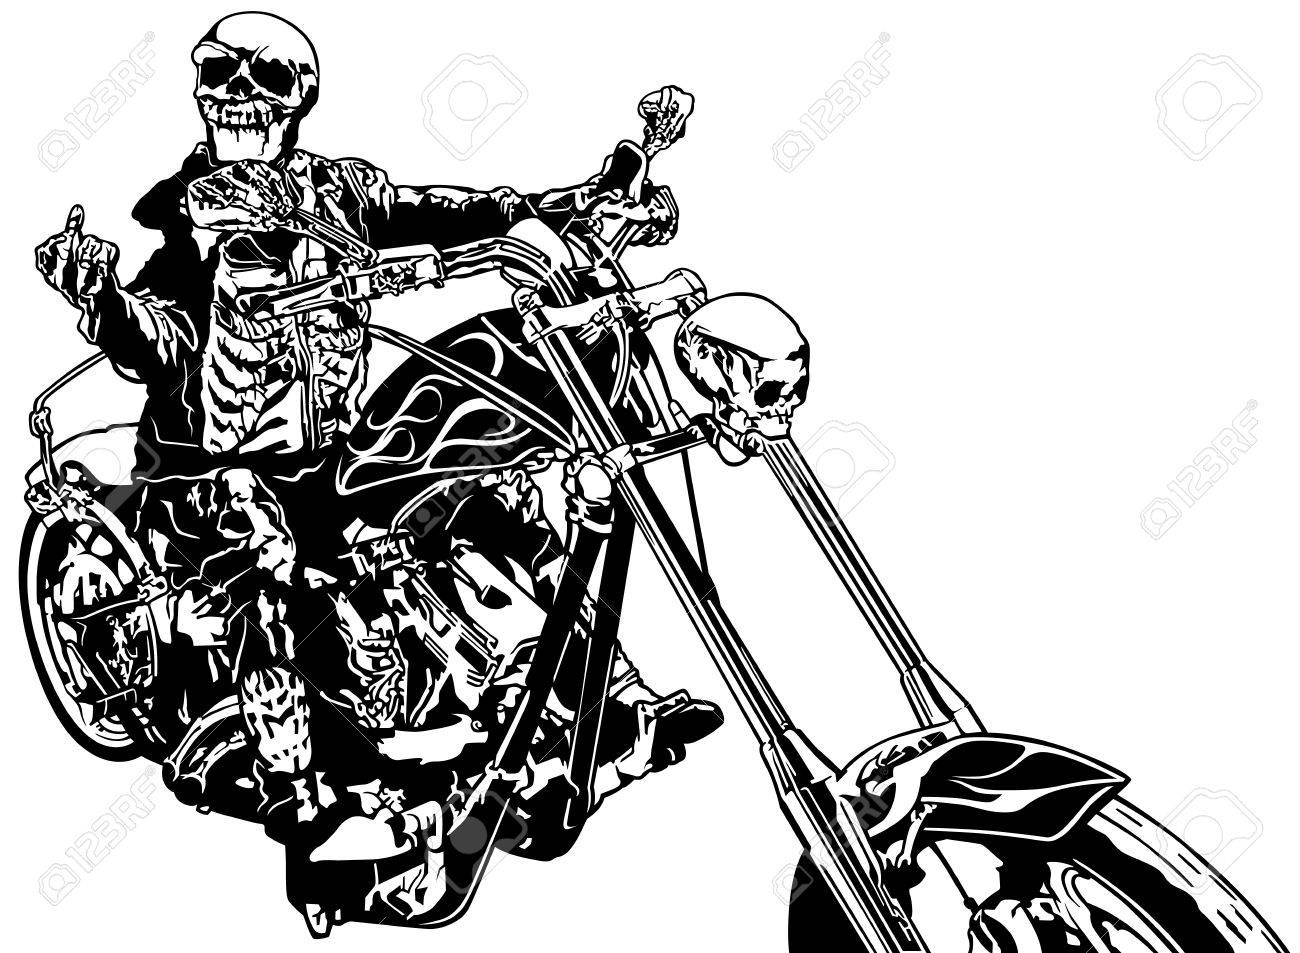 hight resolution of skeleton rider on chopper black and white hand drawn illustration vector